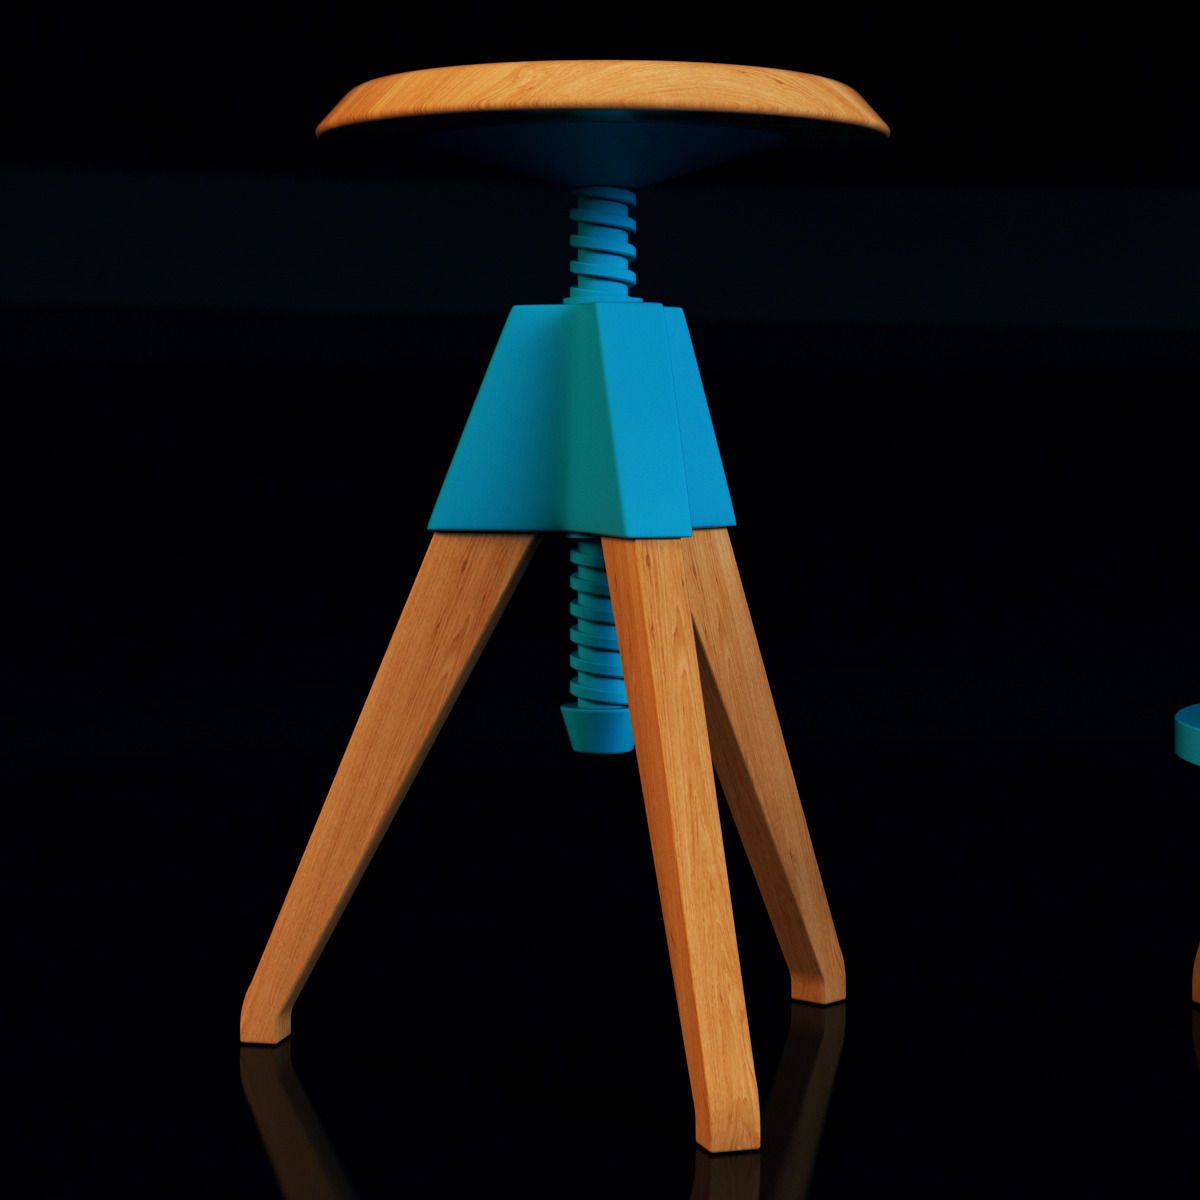 Cosmo Jerry Bar Stool 3d Model Max Obj 3ds Fbx Mtl